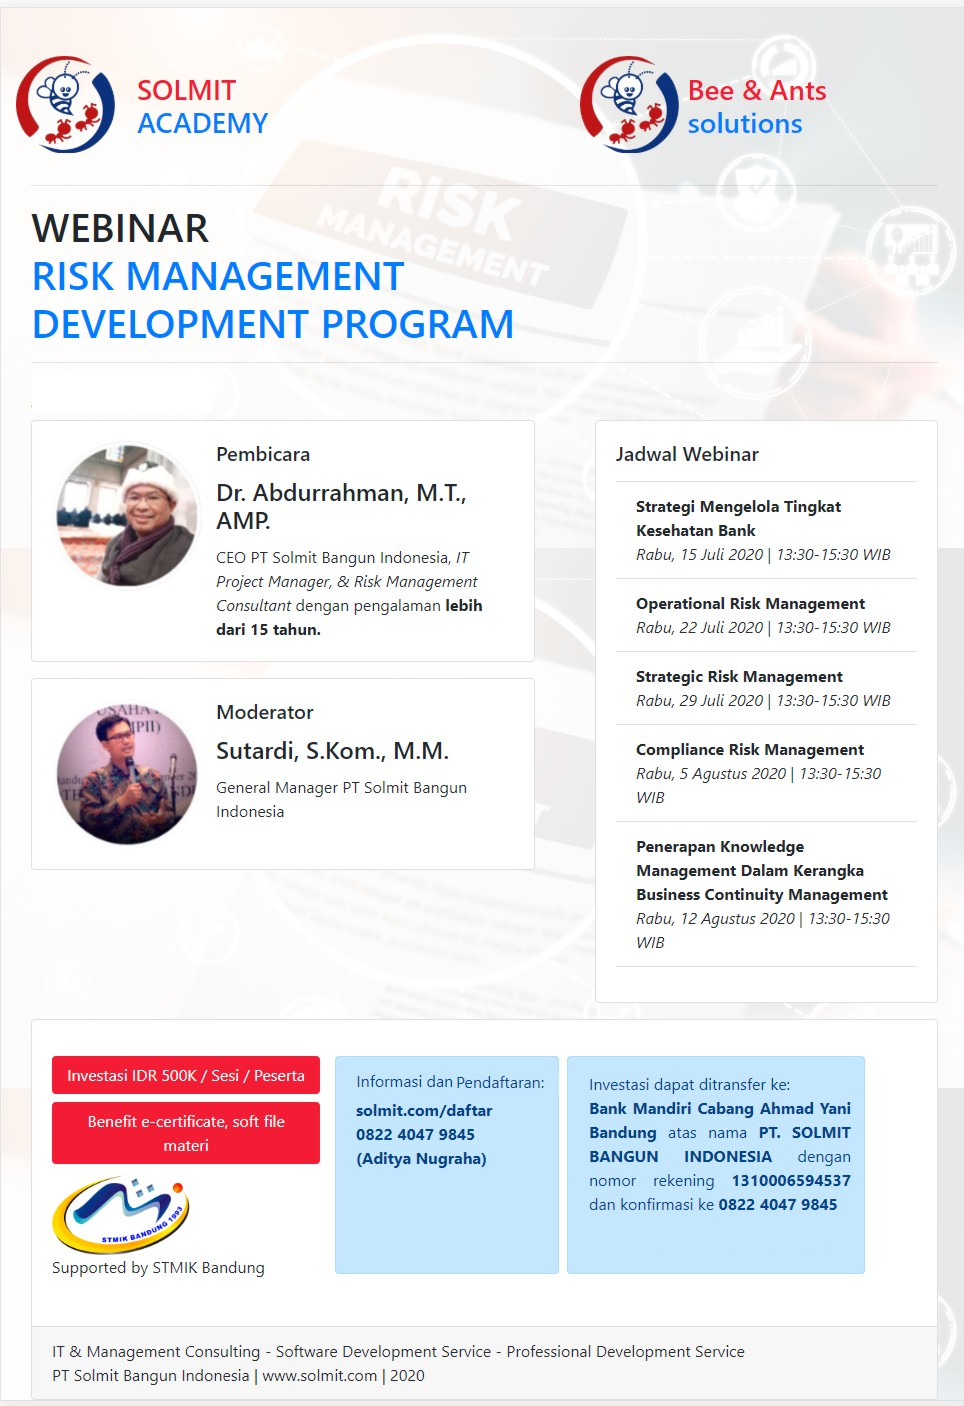 RISK MANAGEMENT DEVELOPMENT PROGRAM (JULI)